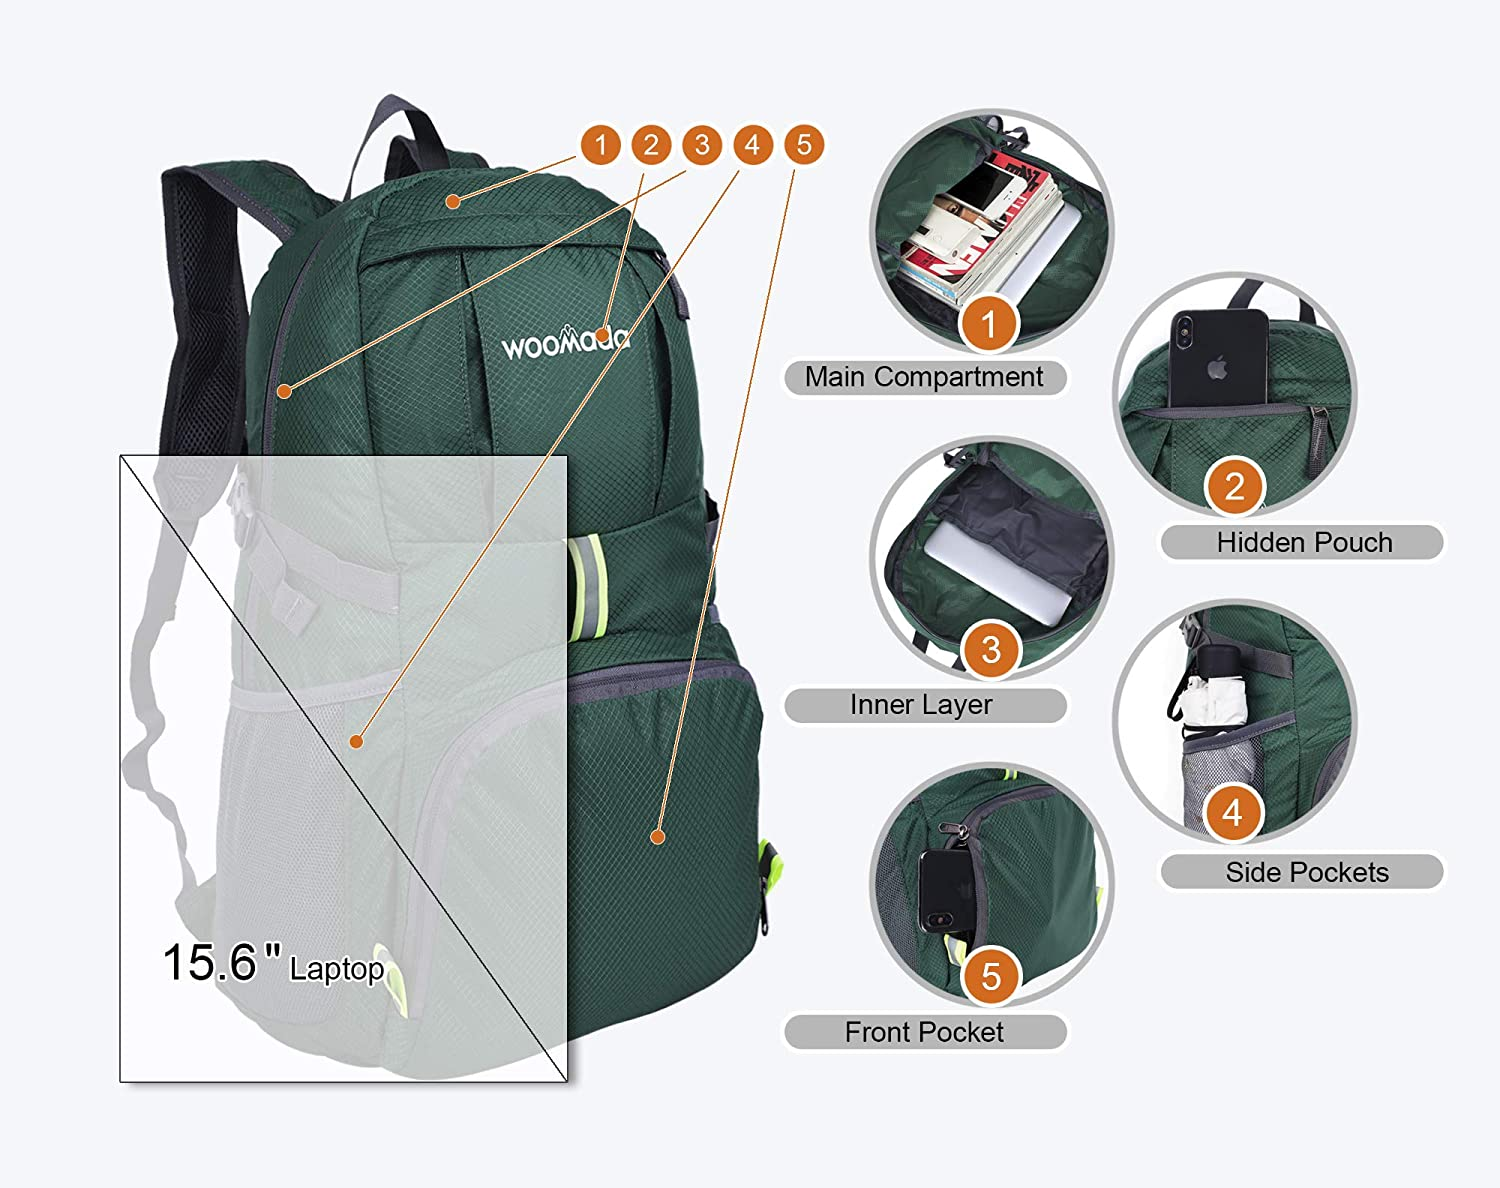 WOOMADA 35L/&40L Lightweight Water Resistant Packable Backpack Outdoor Travel Hiking Daypack